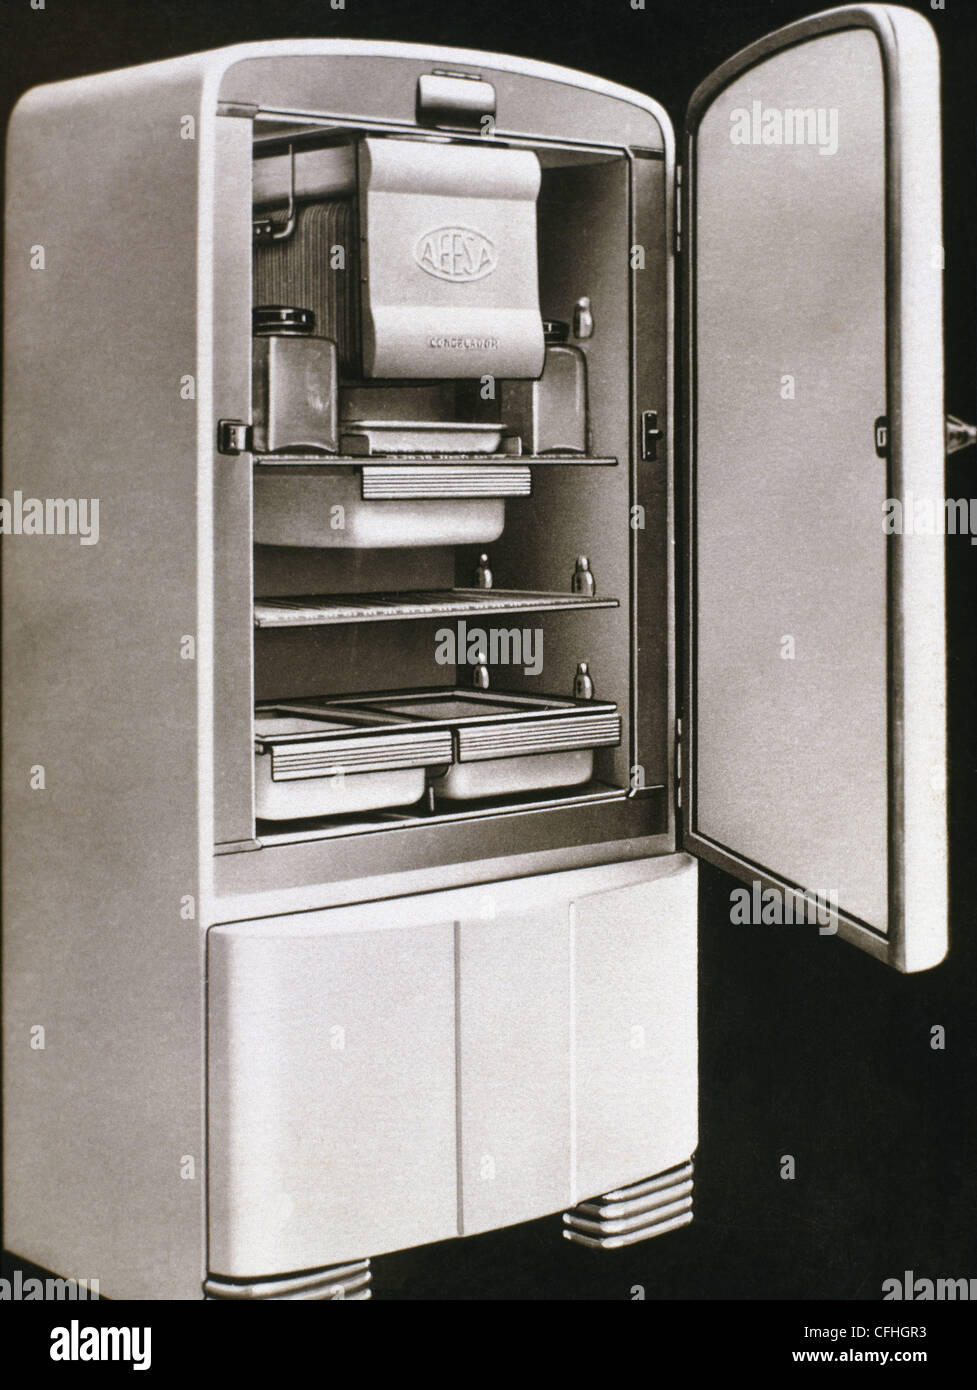 First electric refrigerator produced in Spain by AEESA brand (Anglo-Espanola de Electricidad SA). 50's. - Stock Image